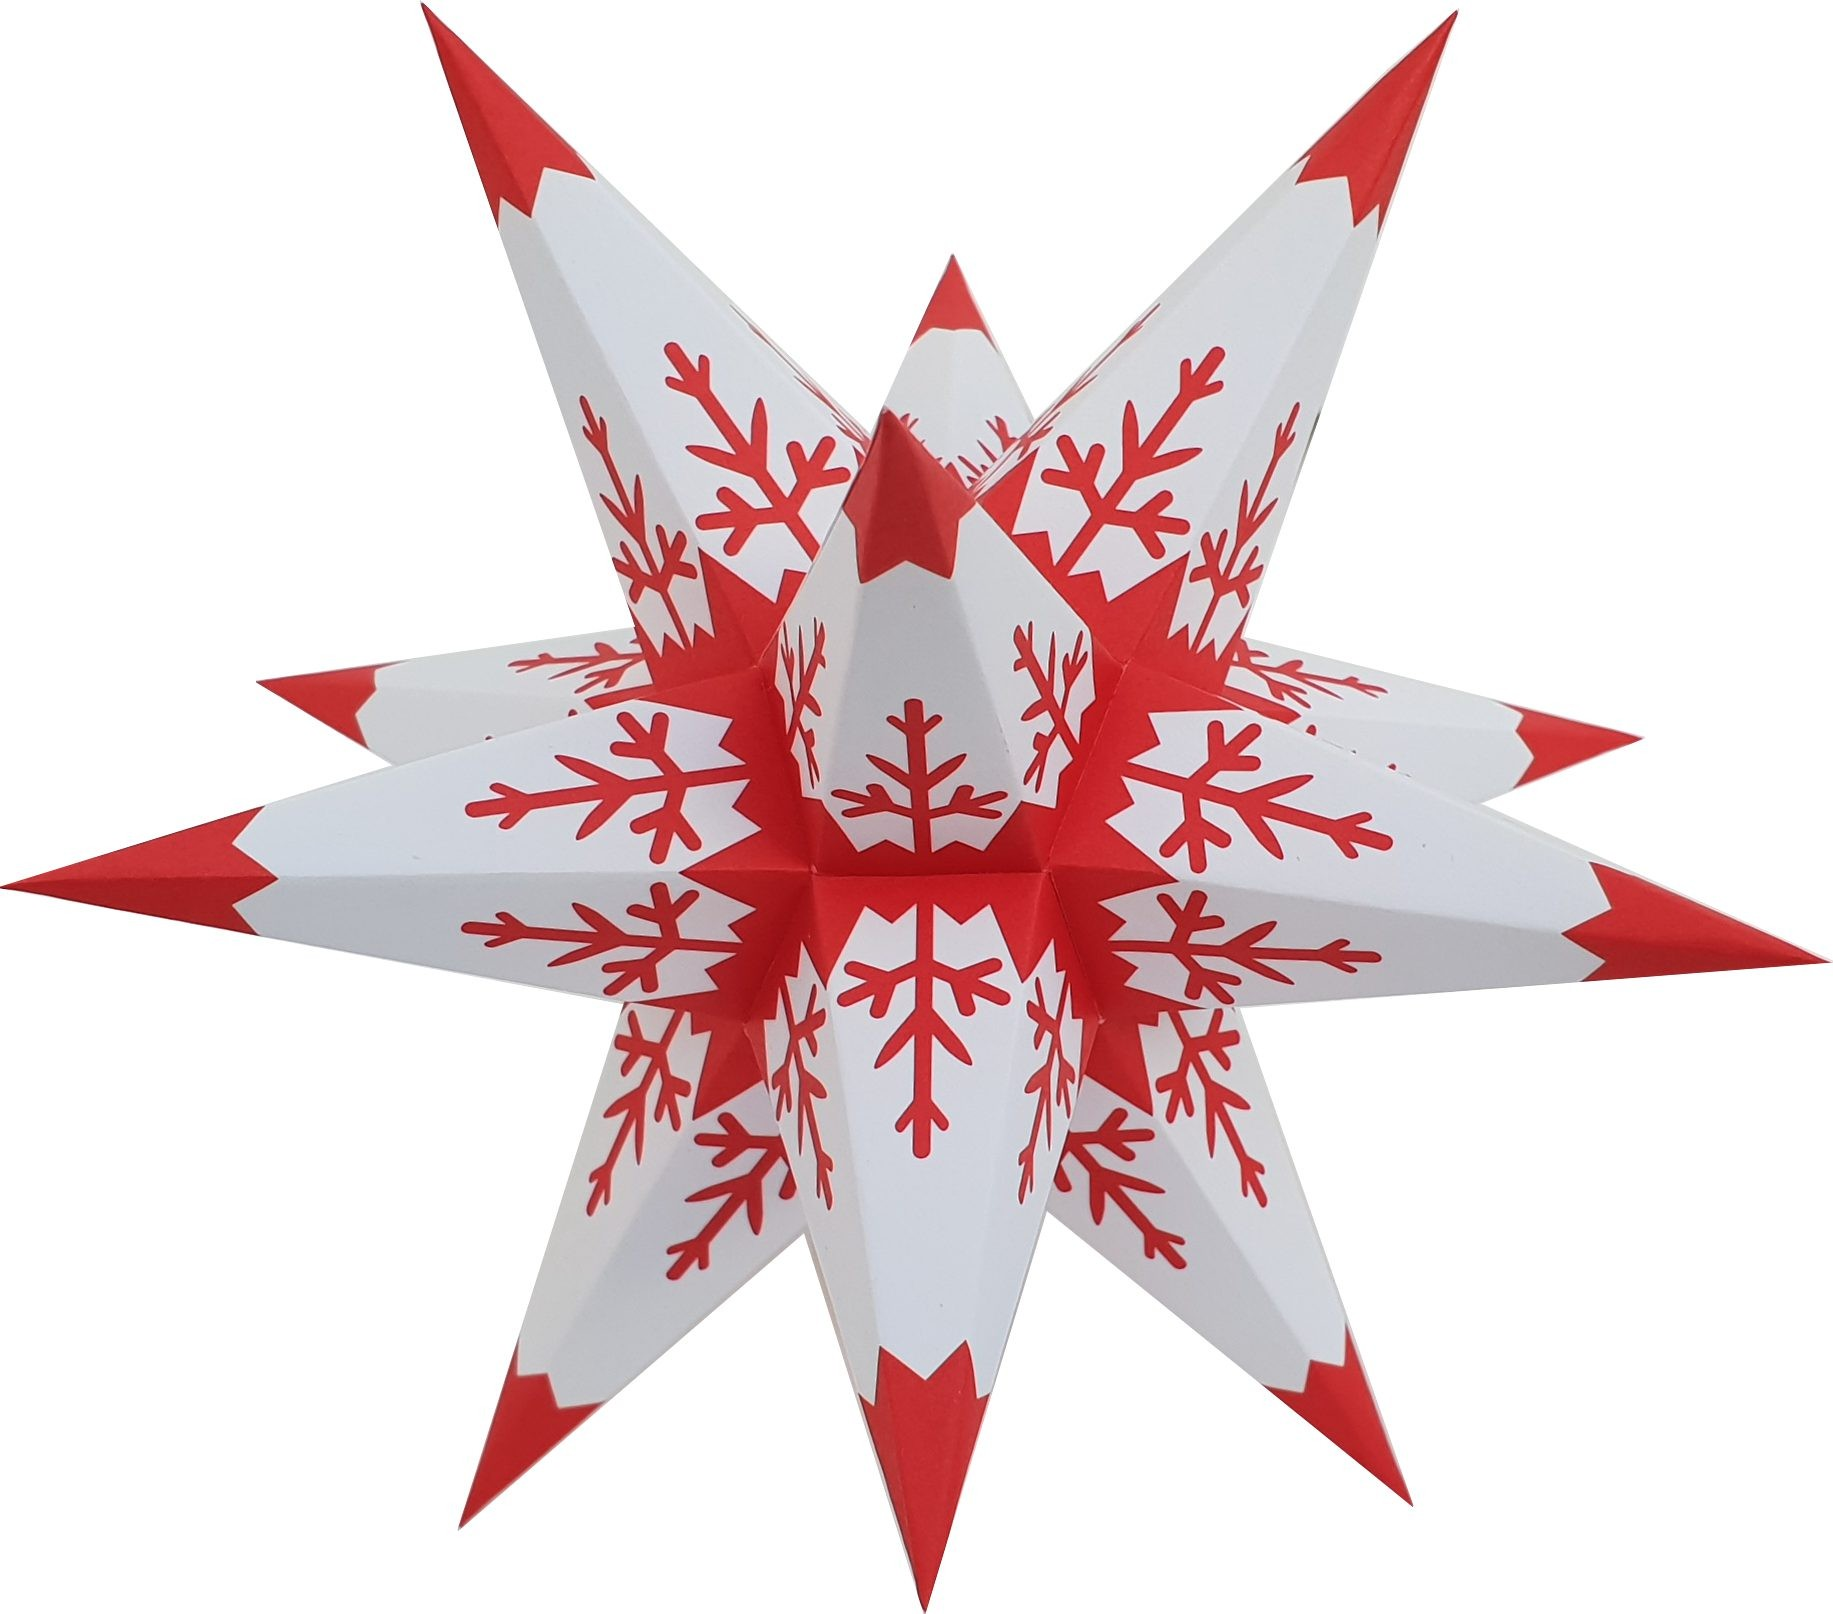 Marienberg Advent stars - white core with red pattern and lace